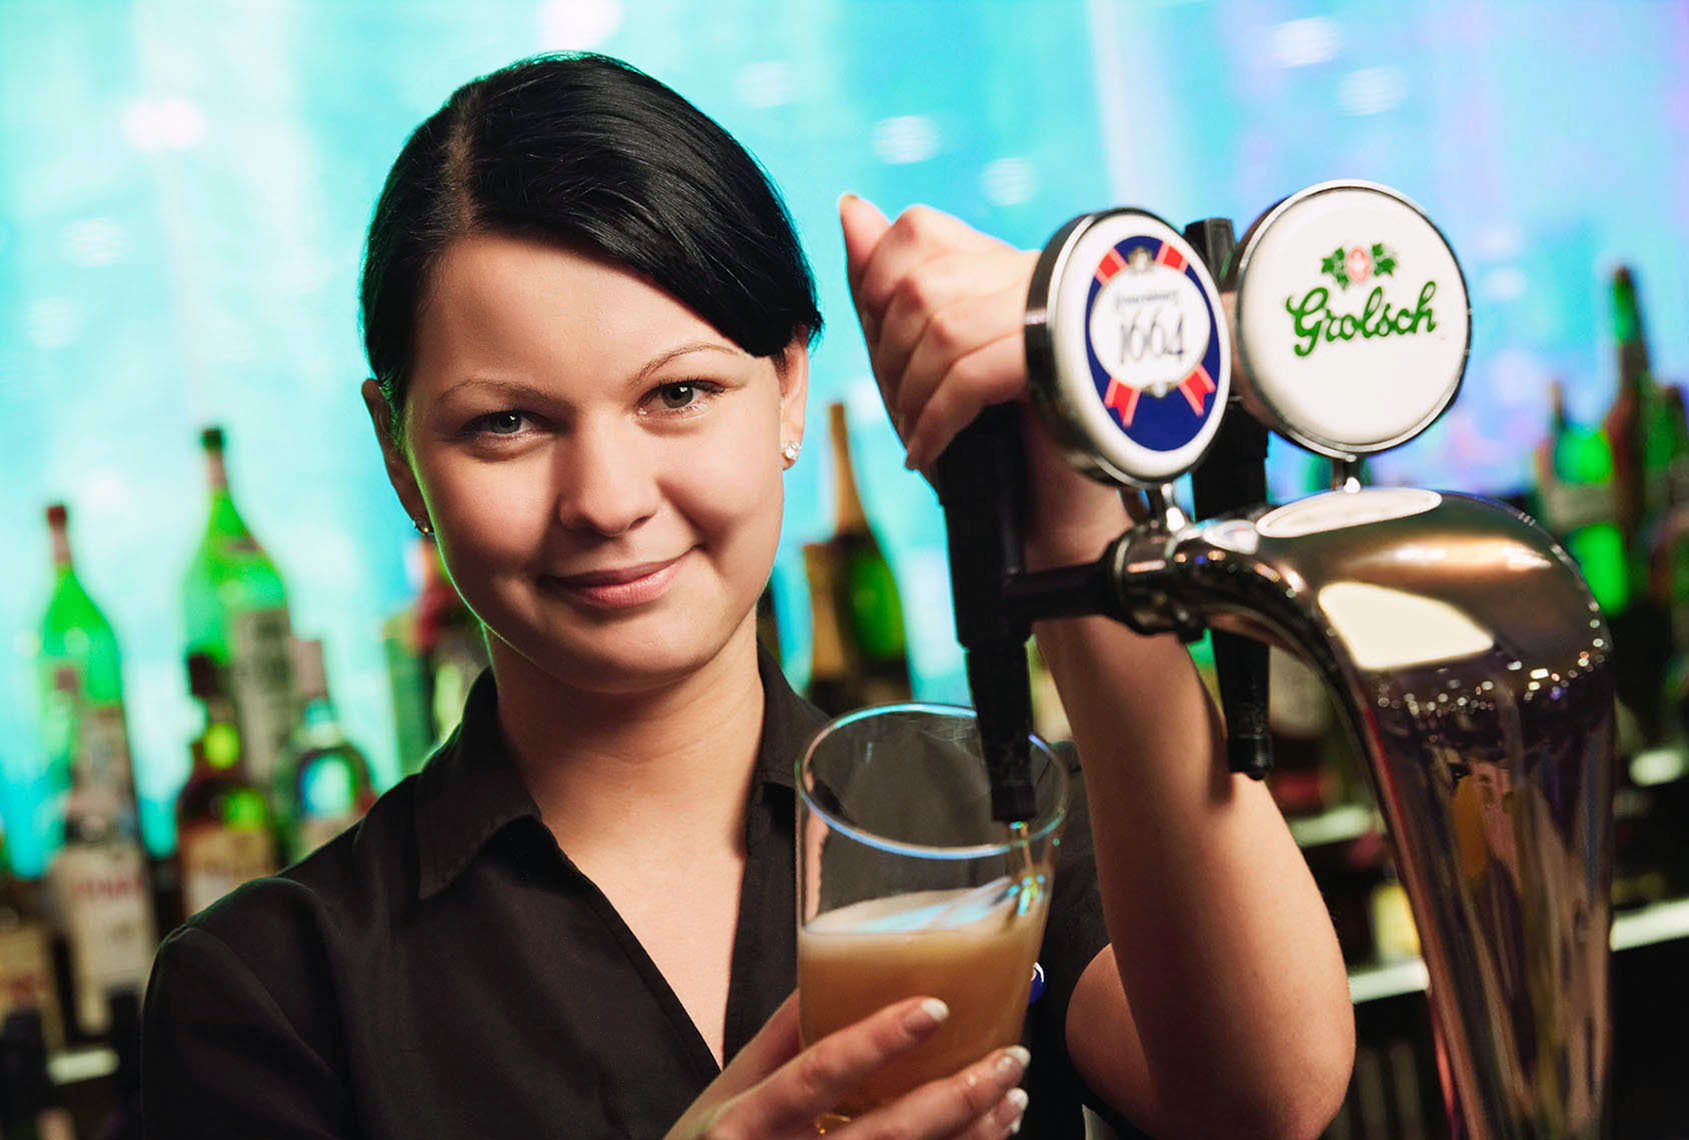 SSPair-barmaid-retouched.jpg